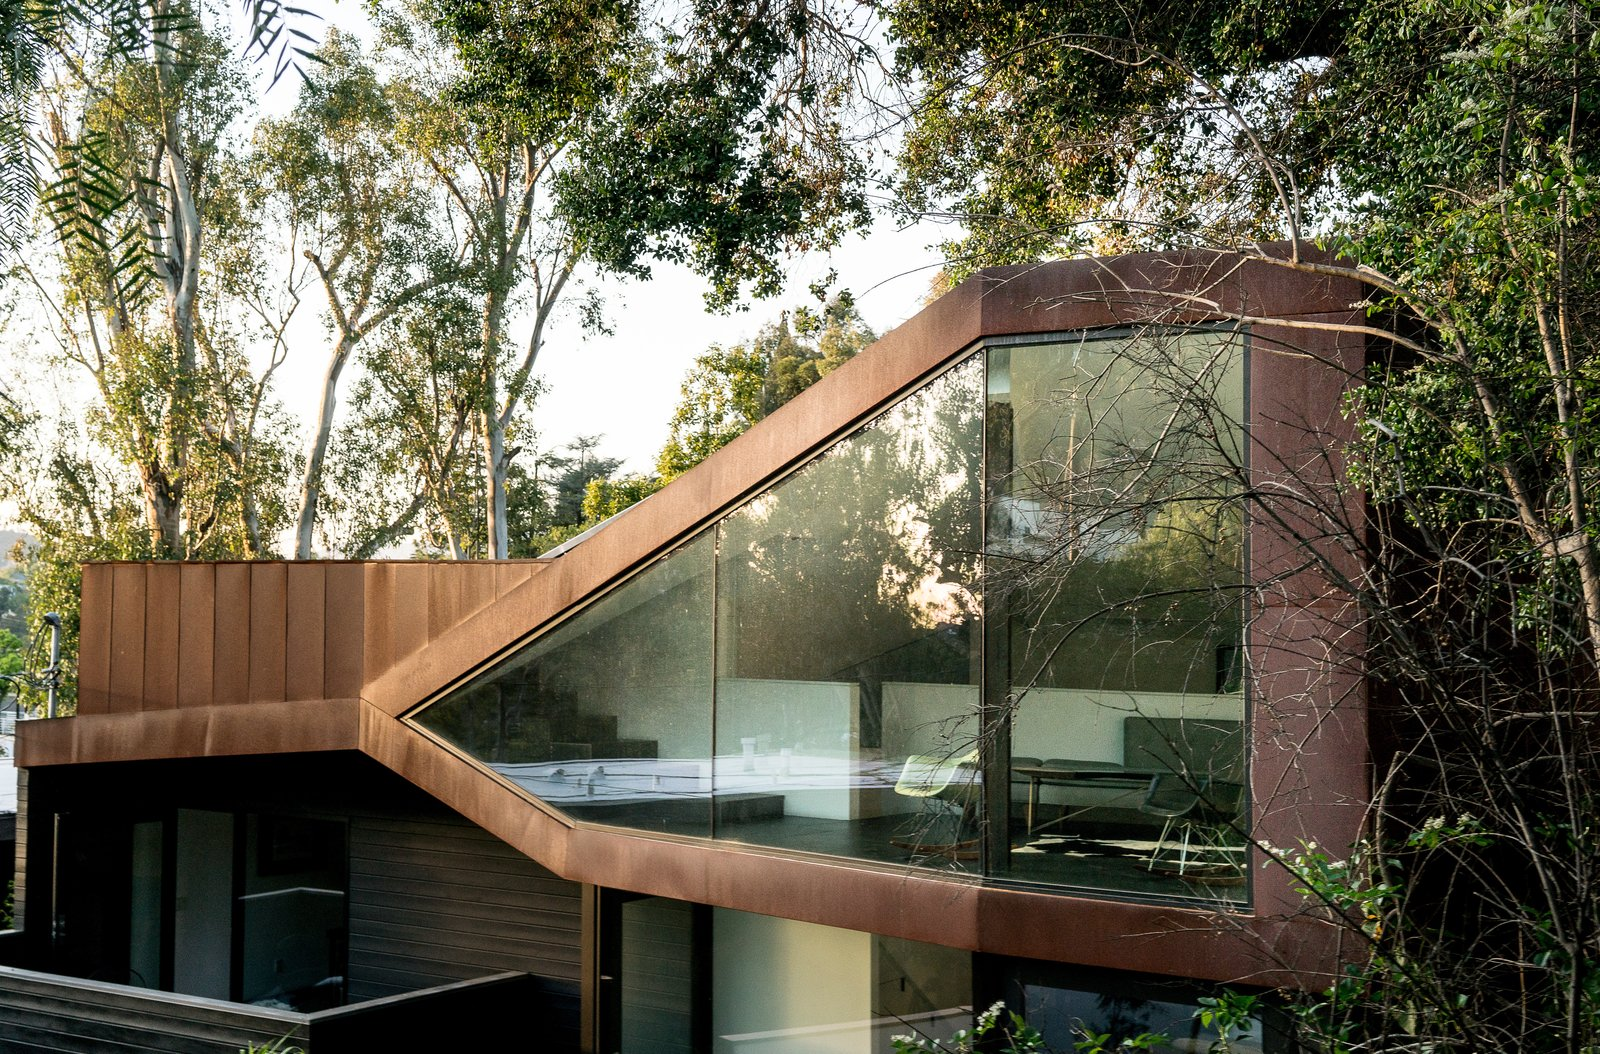 """Resident Richard Kim, who works as the head of design at electric car company Faraday Future, tested his know-how with the creation of his own Los Angeles home, a curvilinear structure clad in Cor-Ten steel and black-stained cedar. """"This house is different,"""" says Richard. """"It's as much a sculpture as it is a place to live."""" Tagged: Exterior, House, Glass Siding Material, Metal Siding Material, Metal Roof Material, and Wood Siding Material.  Photo 2 of 10 in This Los Angeles Home is Driven by Automotive Design"""